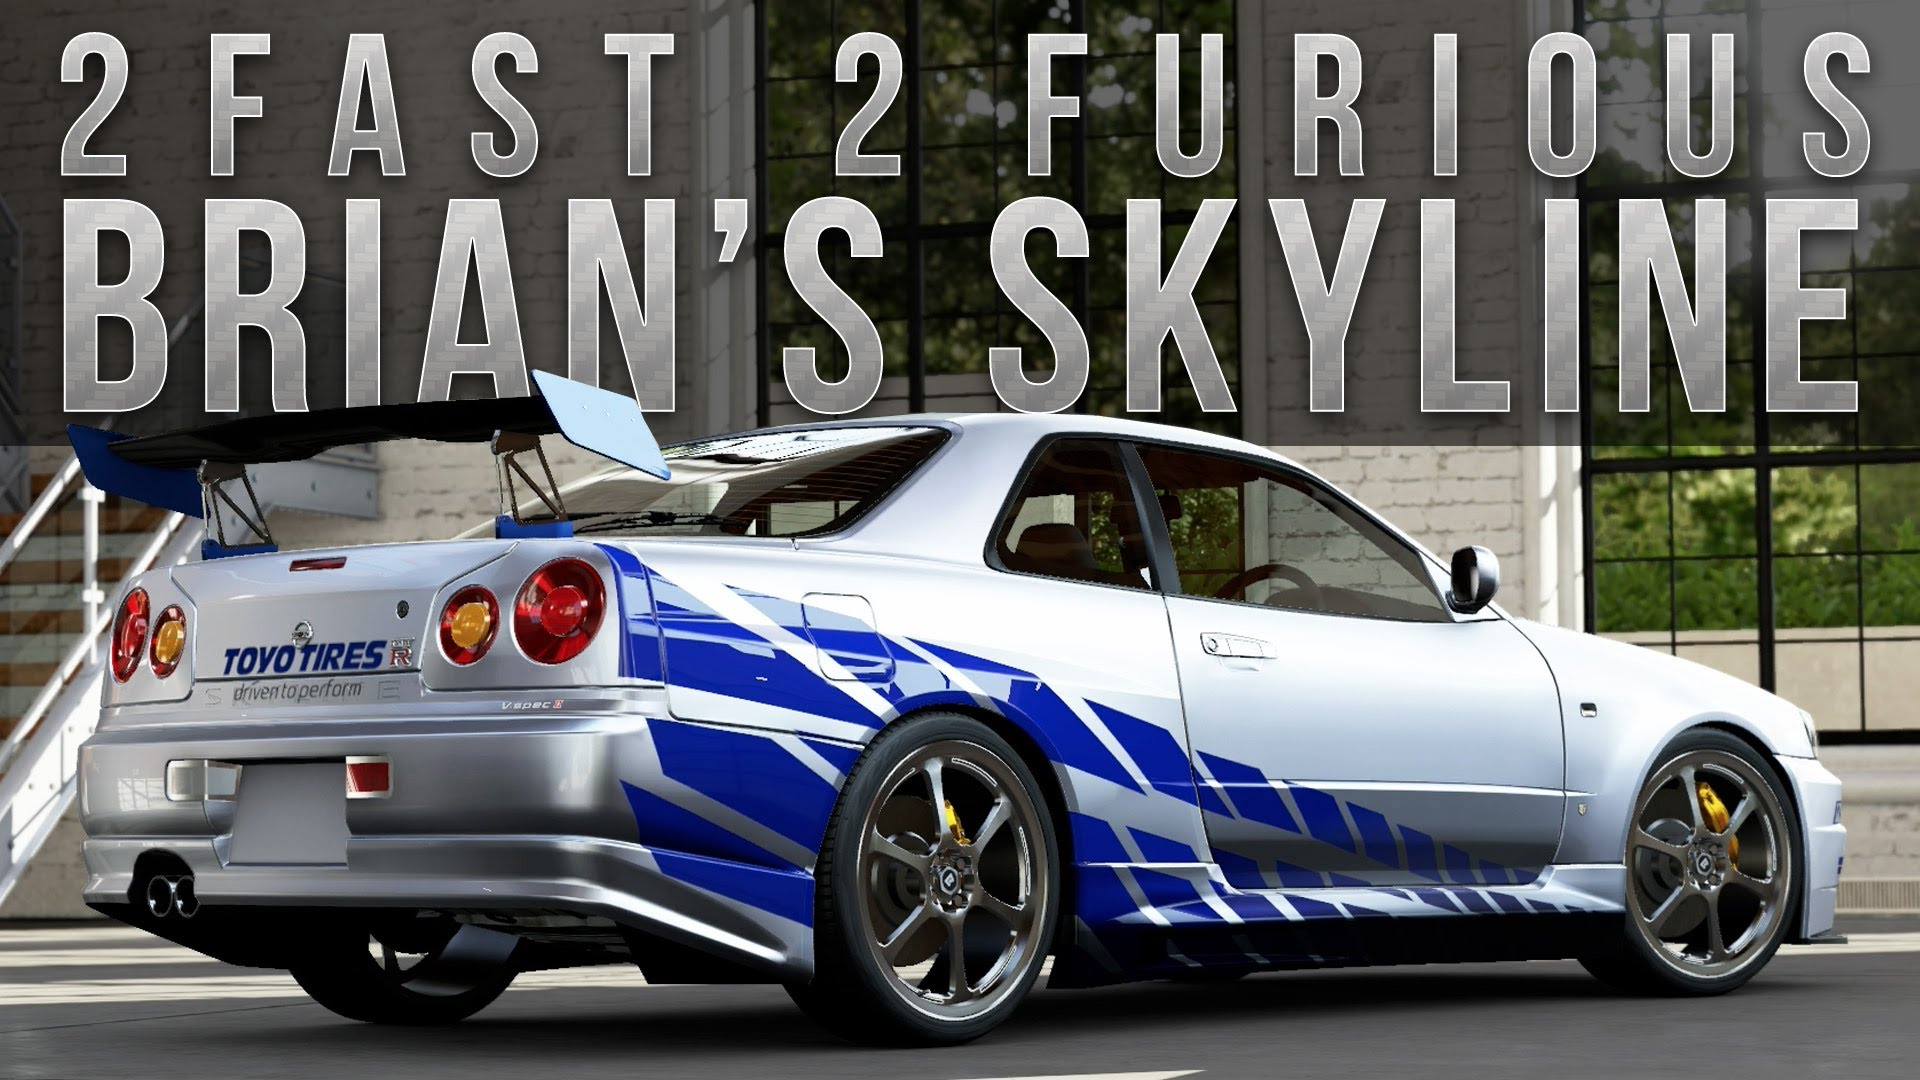 The Hottest Cars From The Fast And Furious Movies Page Of - 2 fast 2 furious cars